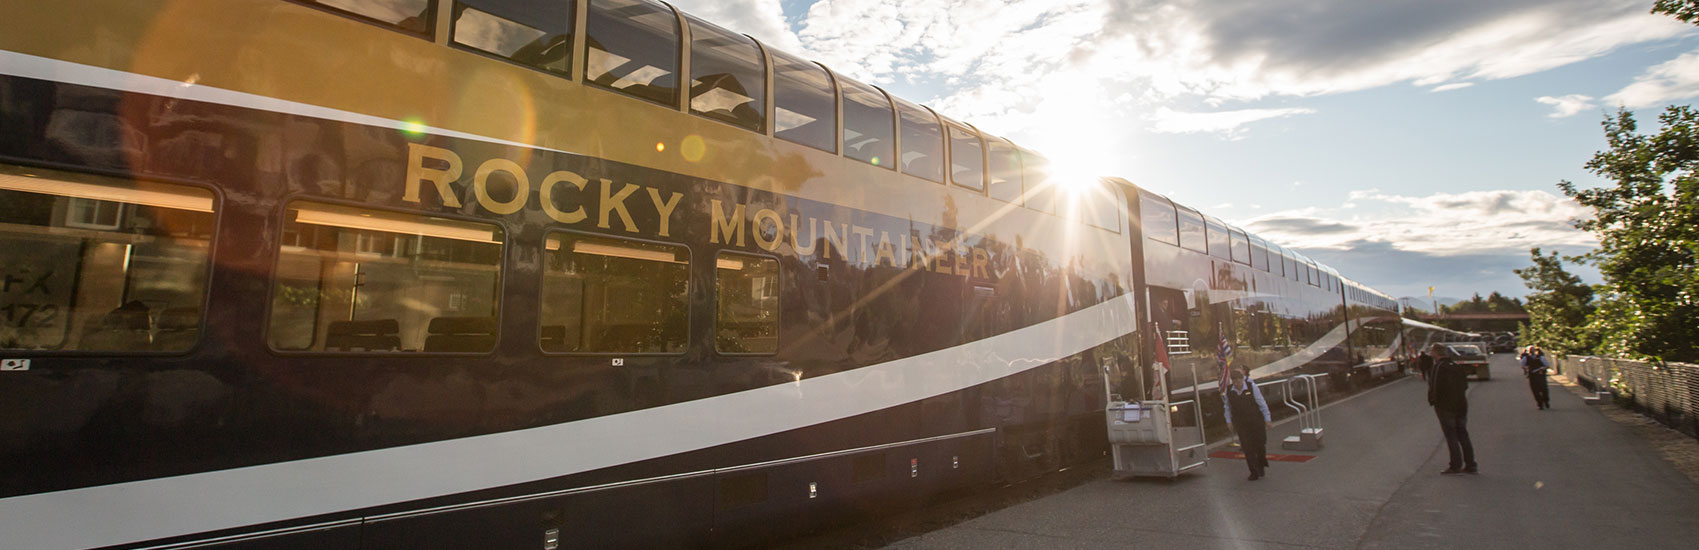 Rocky Mountaineer Health and Safety Procedures